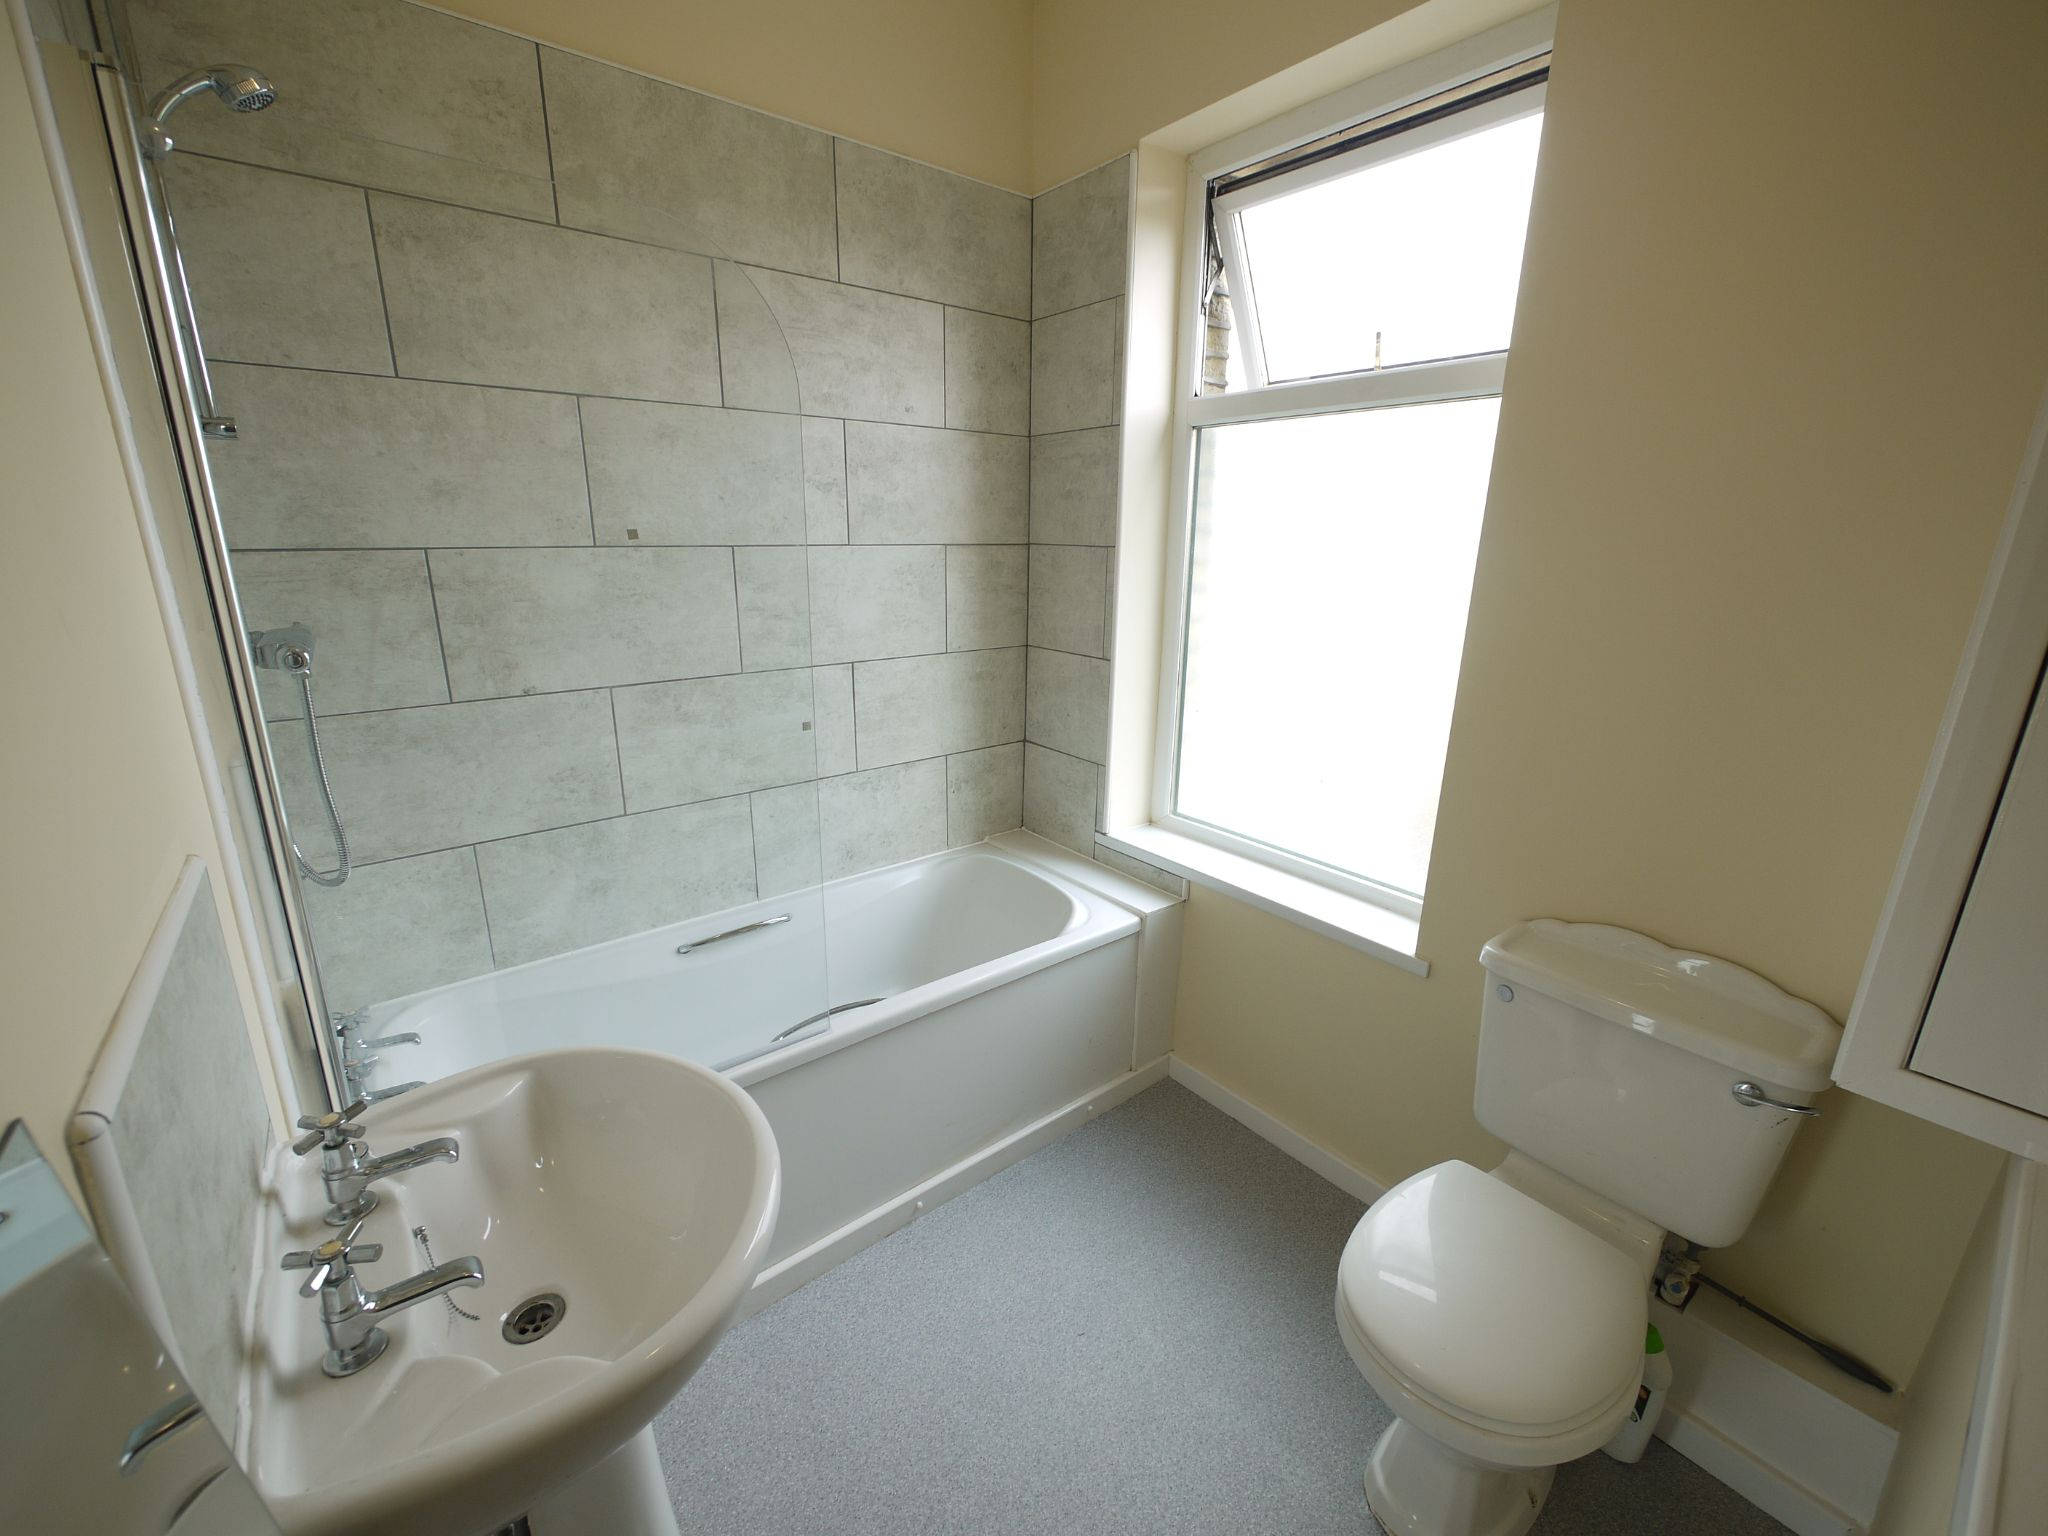 2 bedroom mid terraced house For Sale in Brighouse - Bathroom.